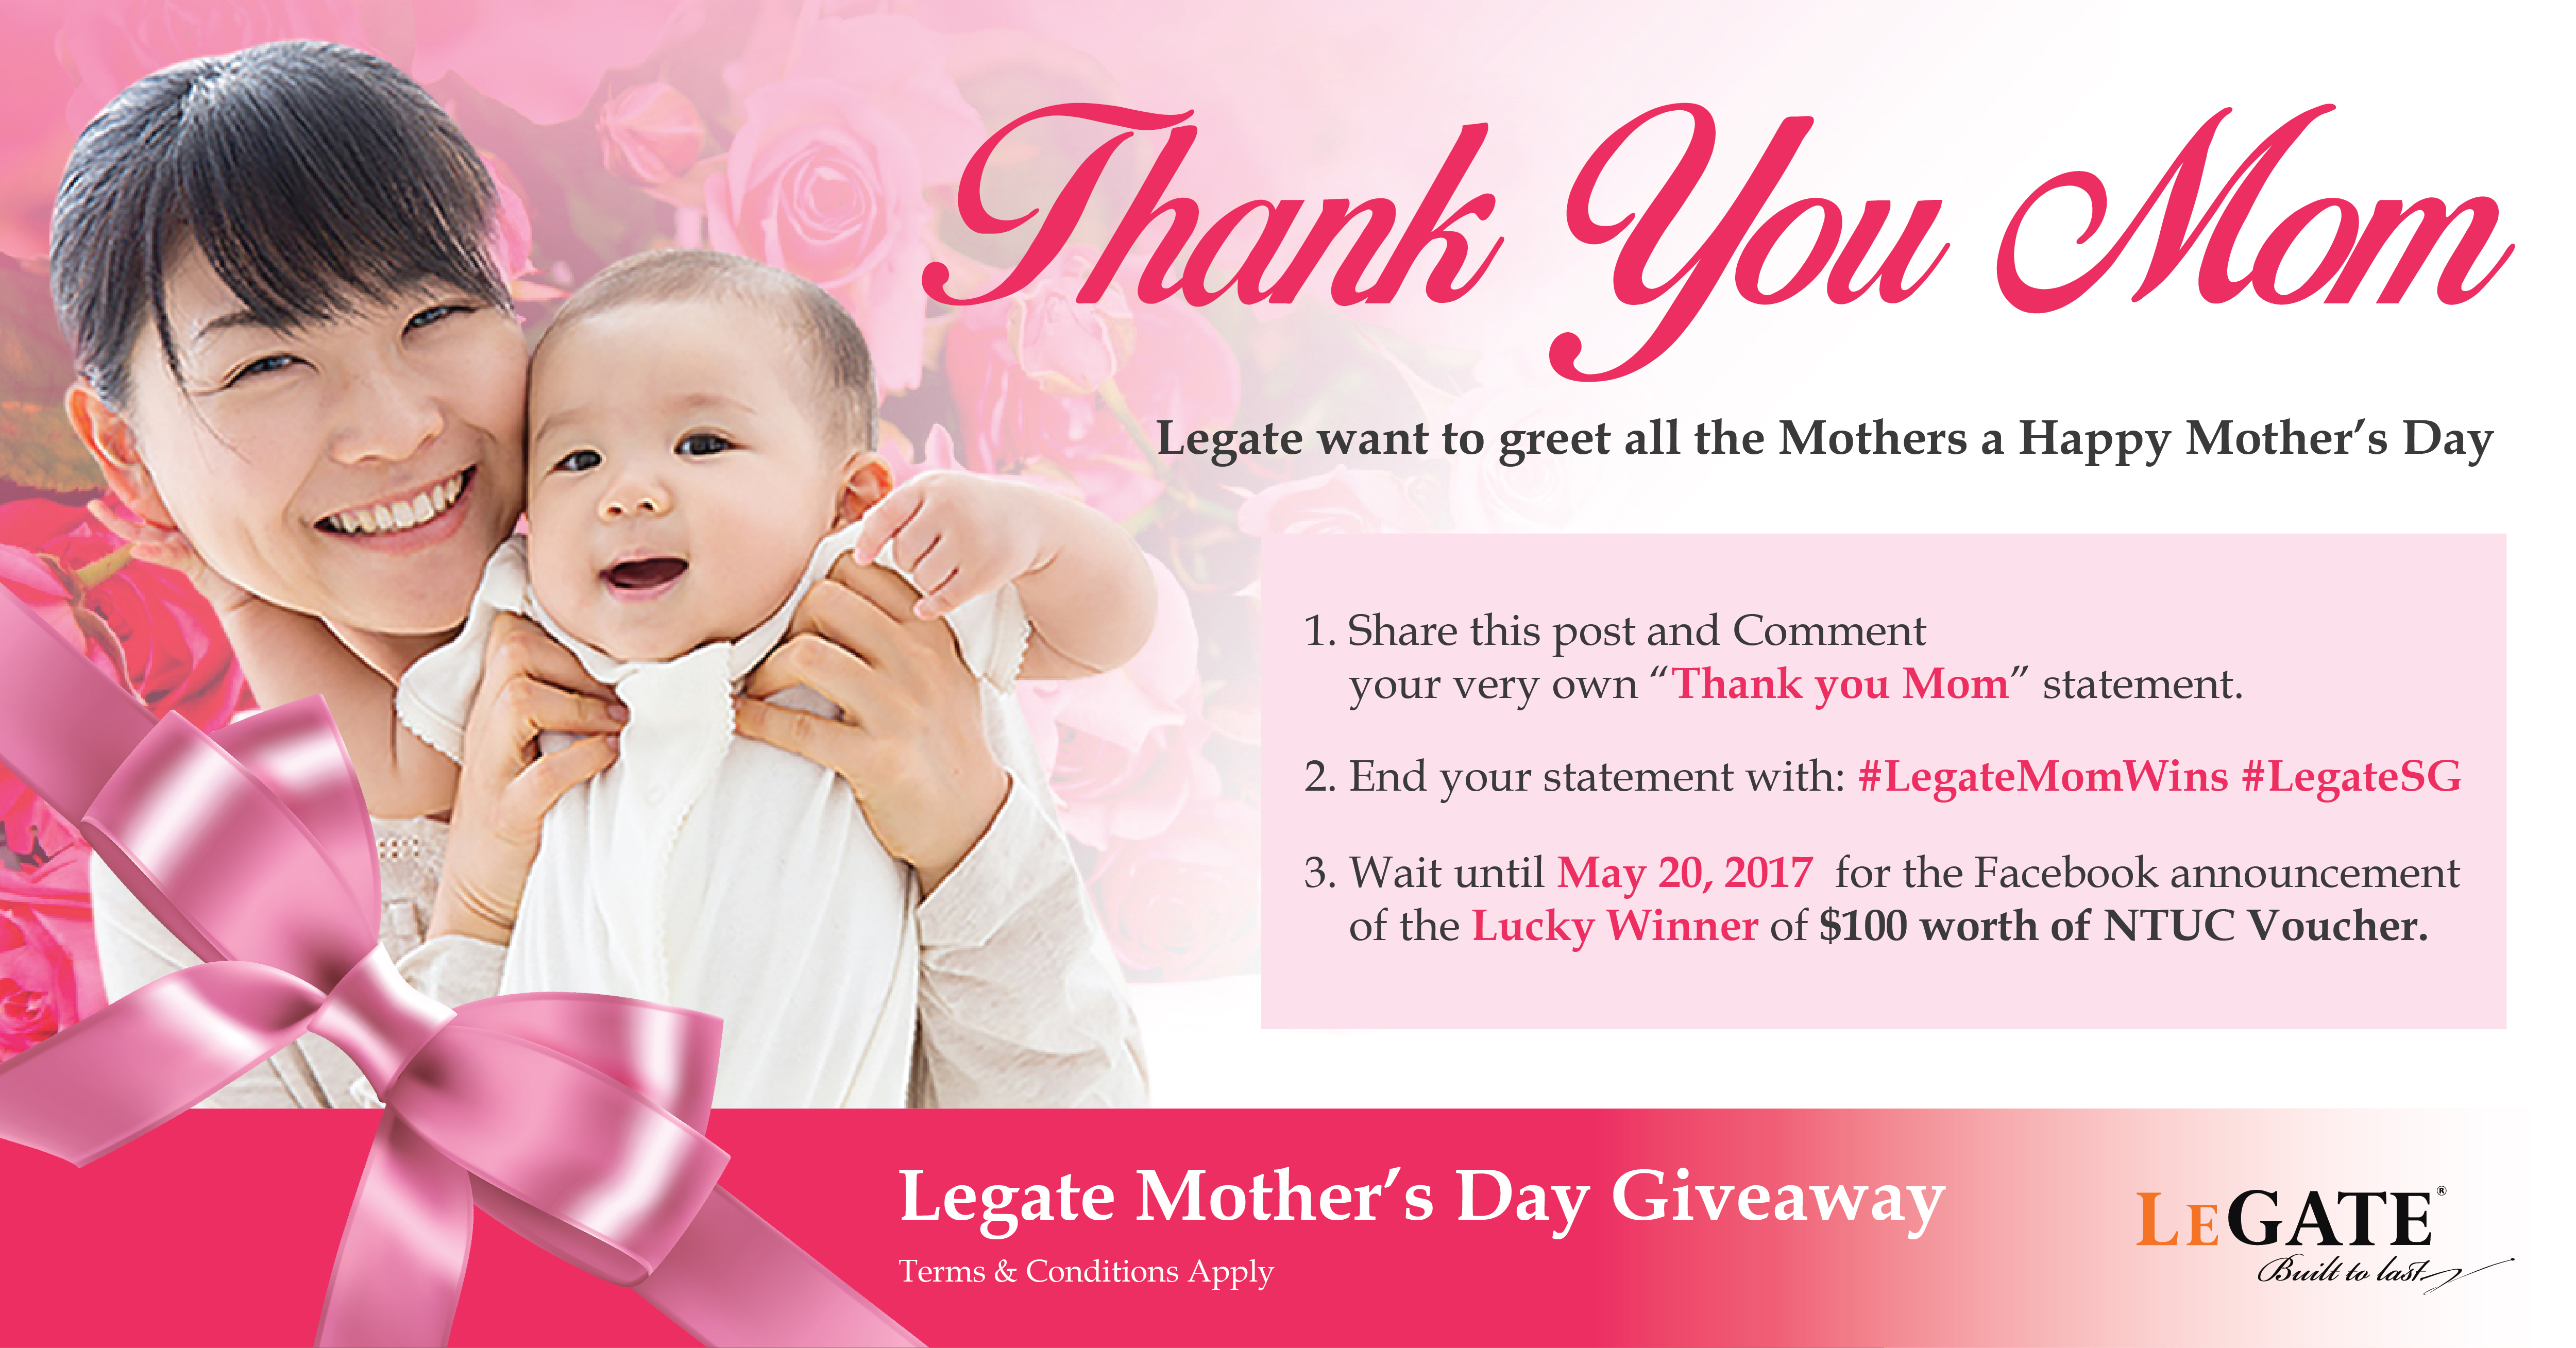 legate-promotions-thankyou-mom